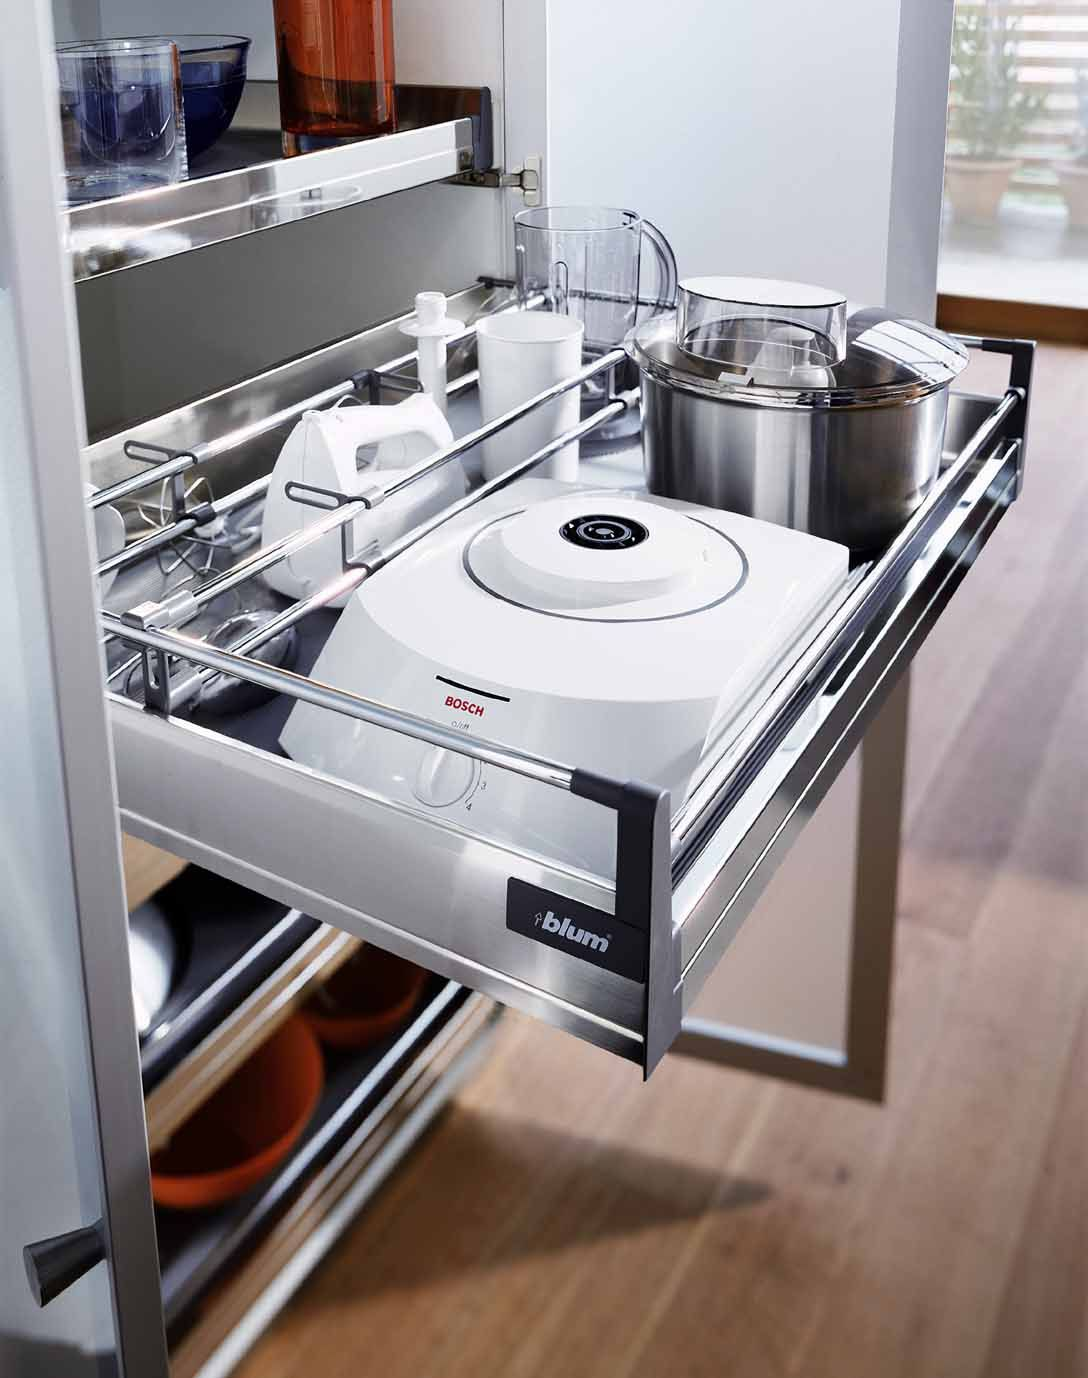 Blum tandembox renovation ideas pinterest kitchens for Kitchen cabinet accessories